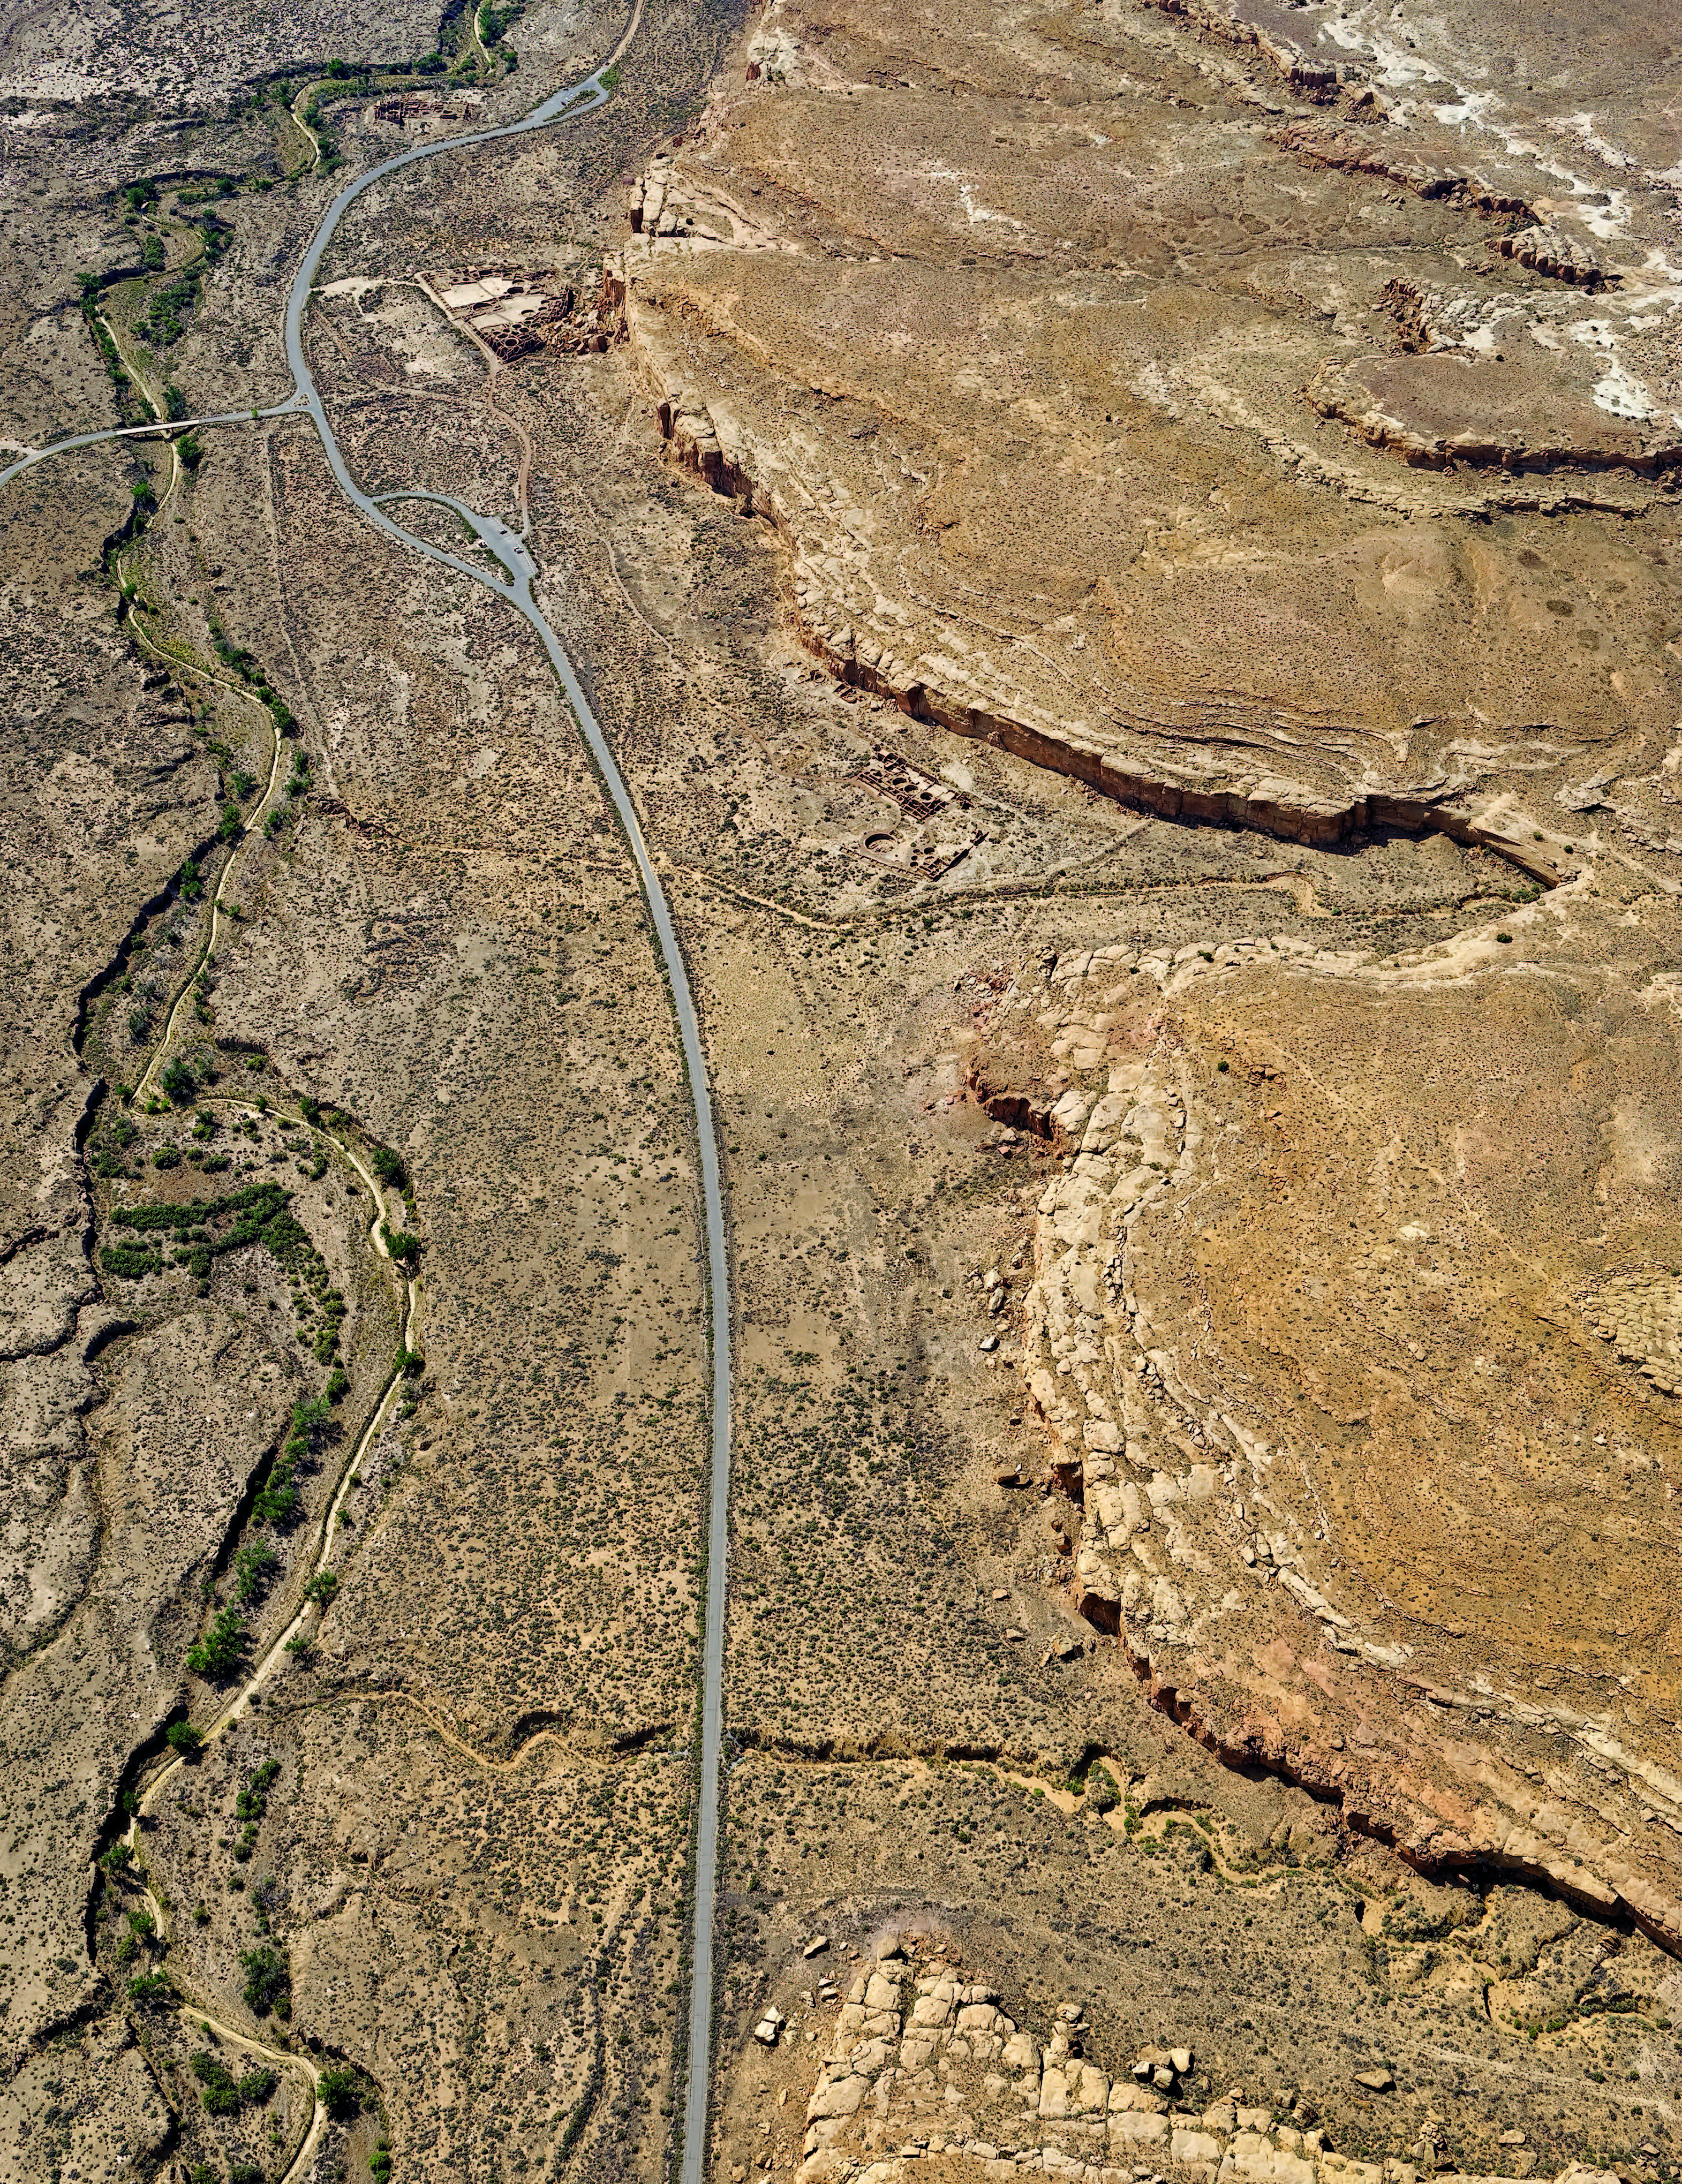 The minimal shadows cast by cliffs and walls in this photograph from 2008 show that it, like its matching Lindbergh image, was taken sometime close to noon. The Park Service had removed historic structures, believing that they distracted from the Chaco Culture structures and features that the park was established to protect. Photograph by Adriel Heisey, 2008. Both photographs are from Oblique Views: Aerial Photography and Southwest Archaeology, by Charles A. Lindbergh, Anne Morrow Lindbergh, and Adriel Heisey, edited by Maxine E. McBrinn, with essays by Linda J. Pierce and Erik O. Berg (Santa Fe: Museum of New Mexico Press, 2015